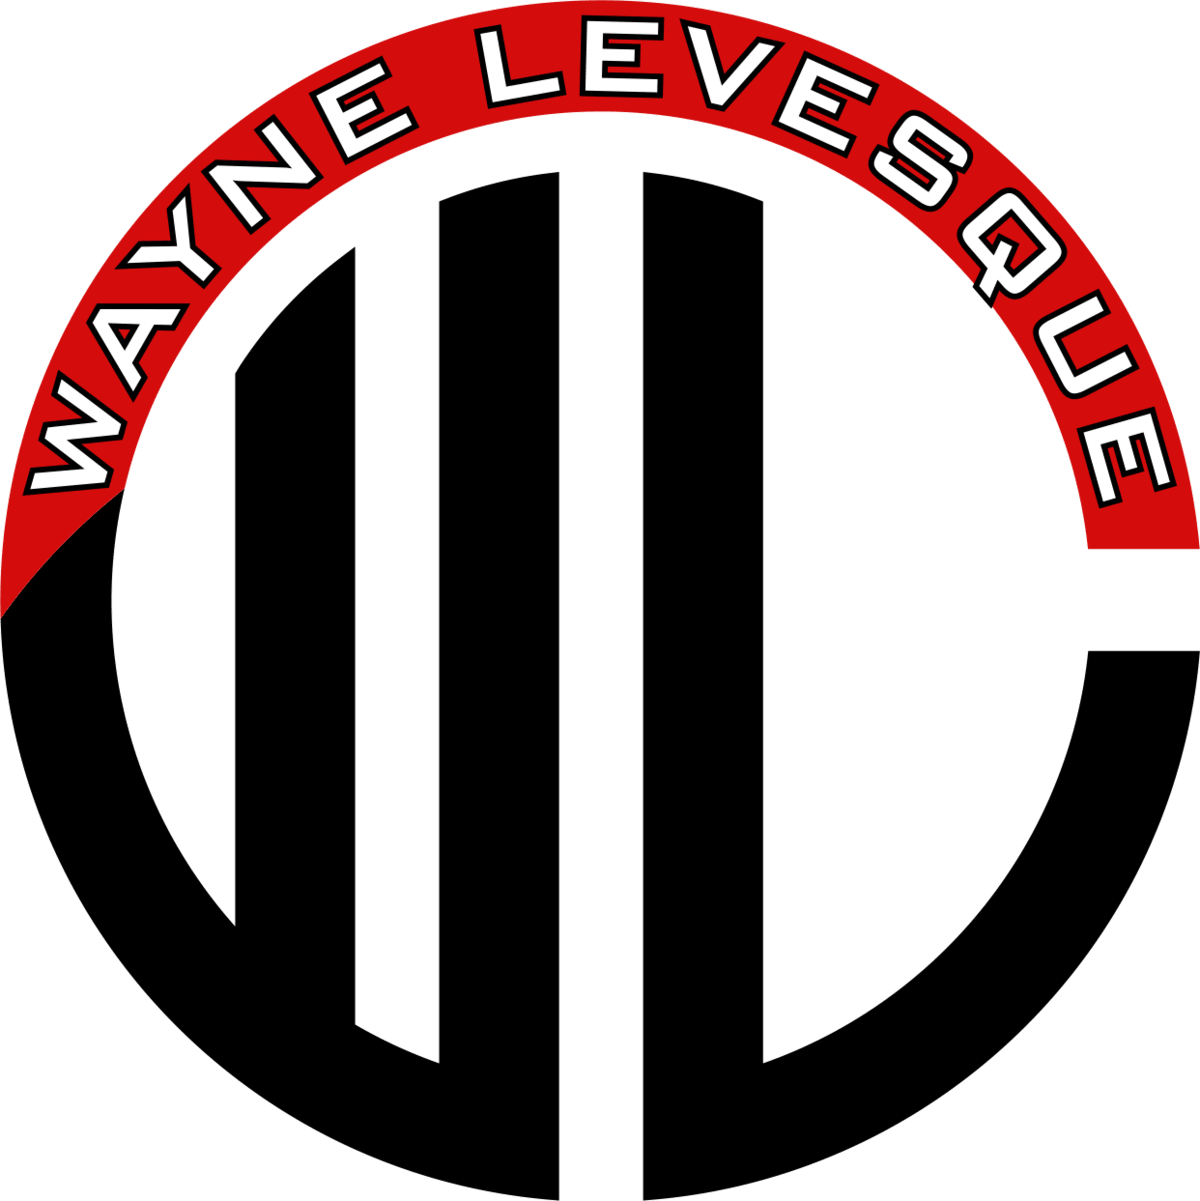 Wayne Levesque Music